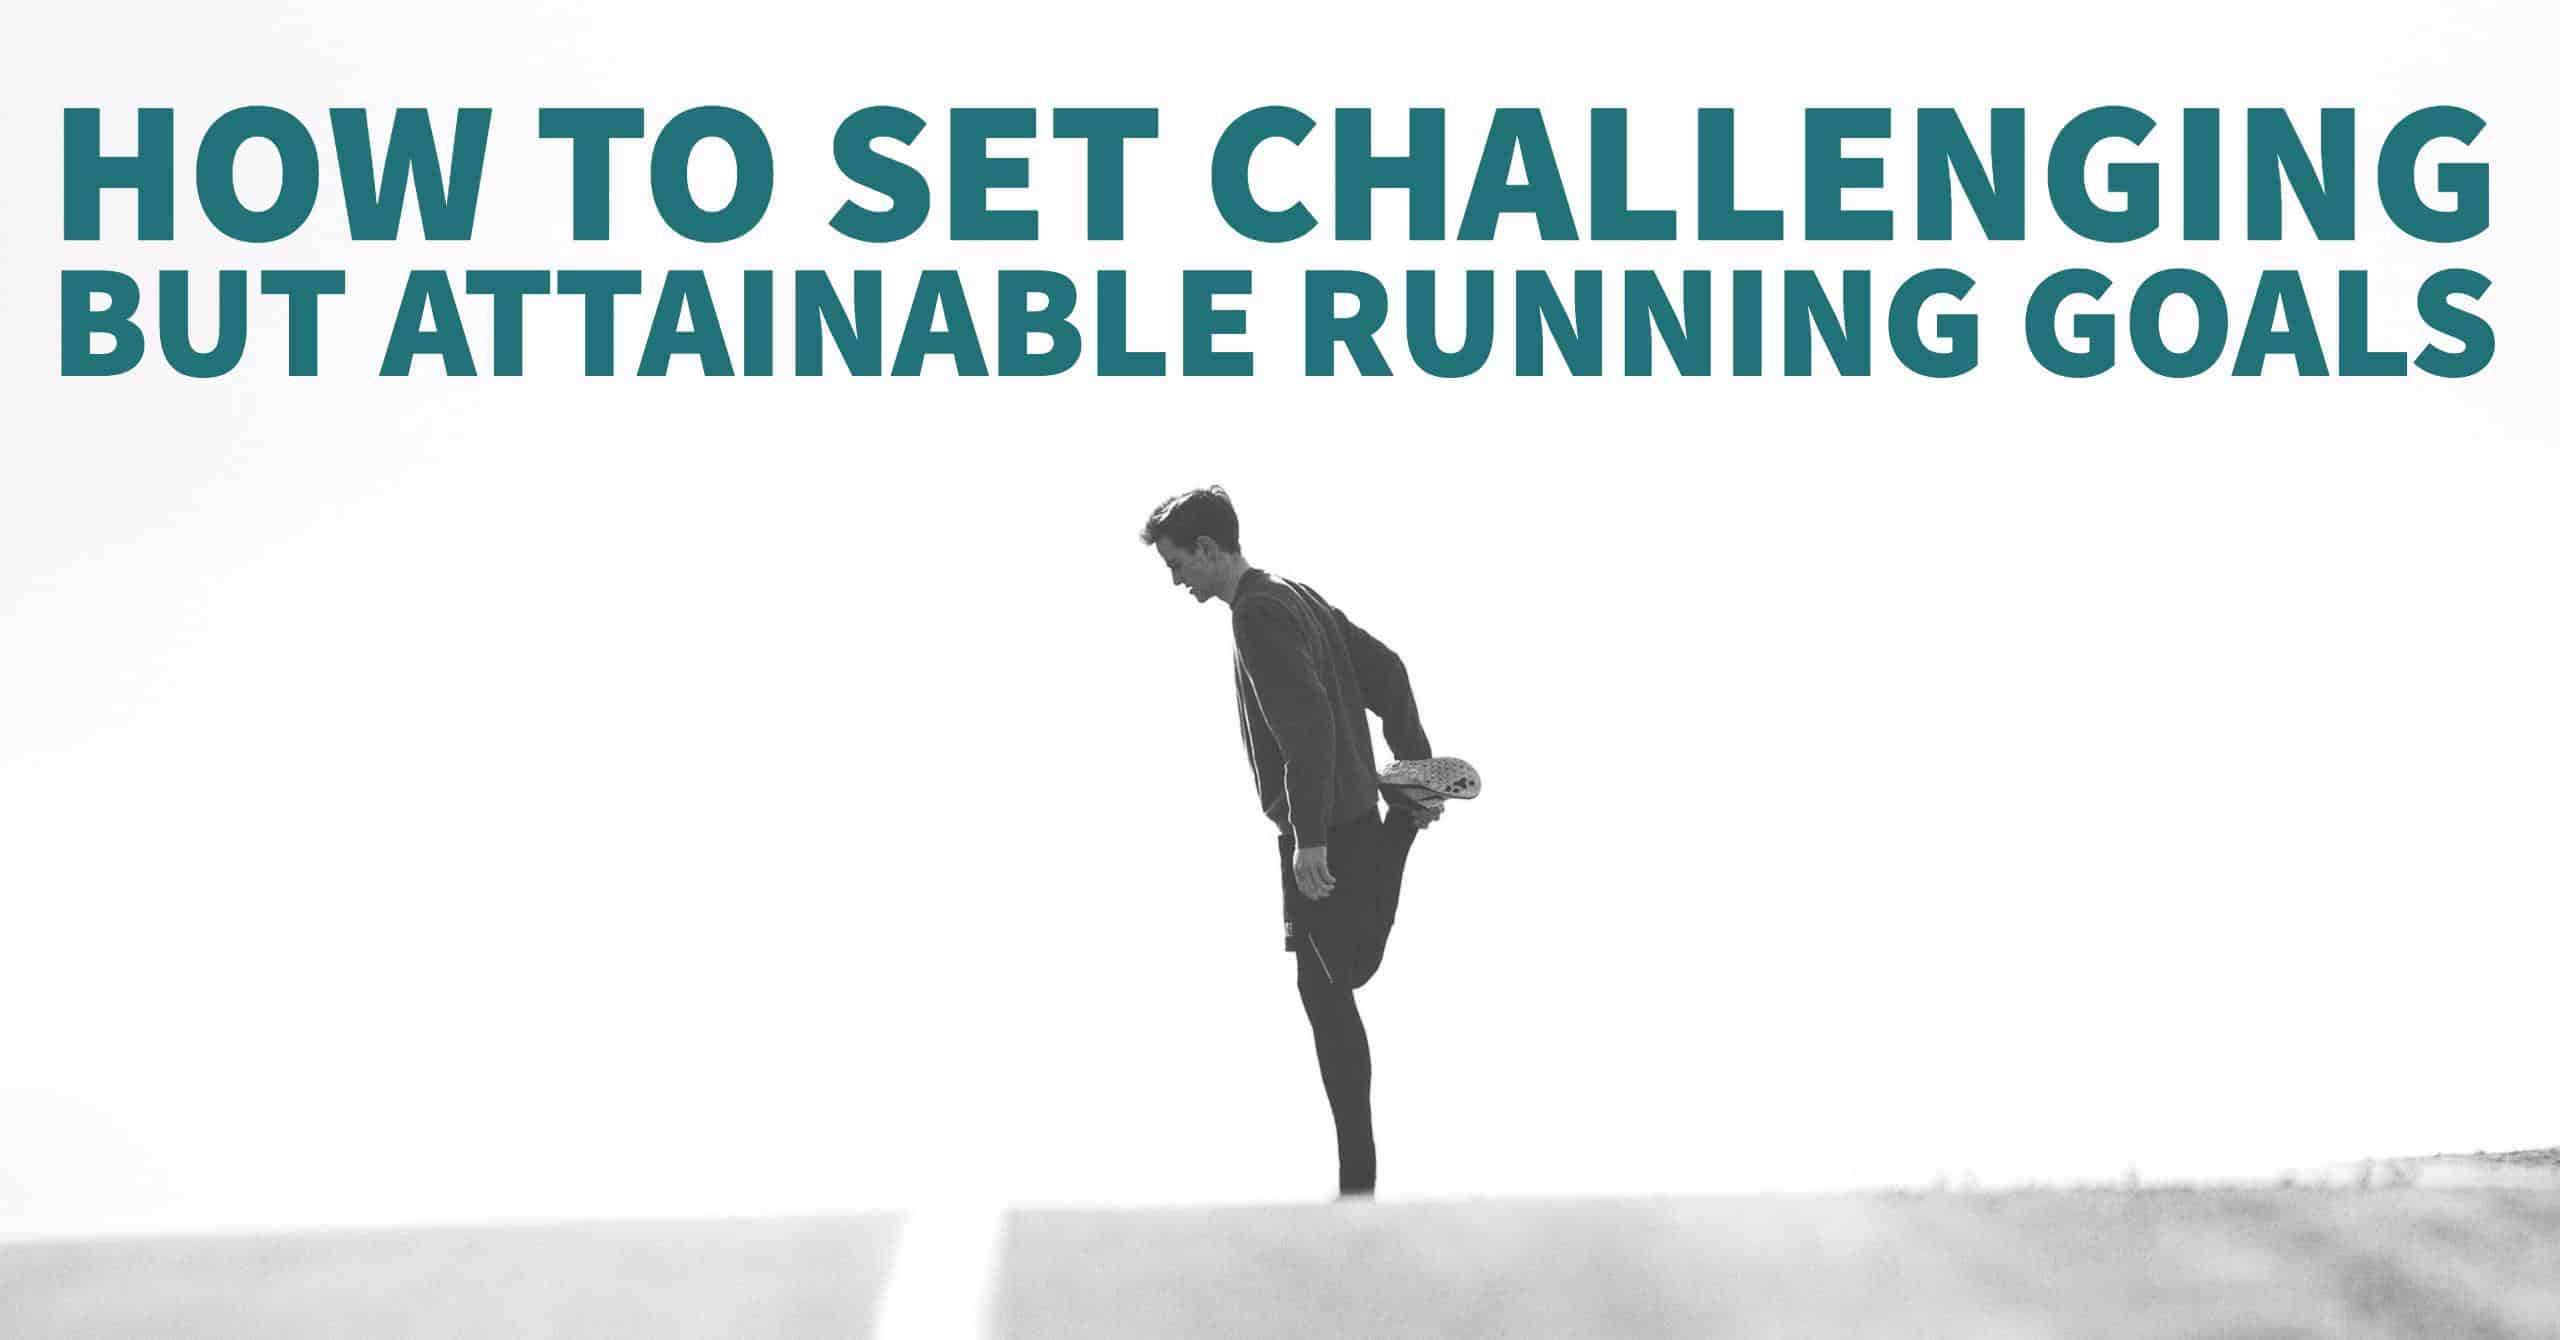 As you prepare for a 5K one of the areas that many runners overlook is actually setting a goal. In many cases a time or distance goal. We break down how to set challenging but attainable running goals